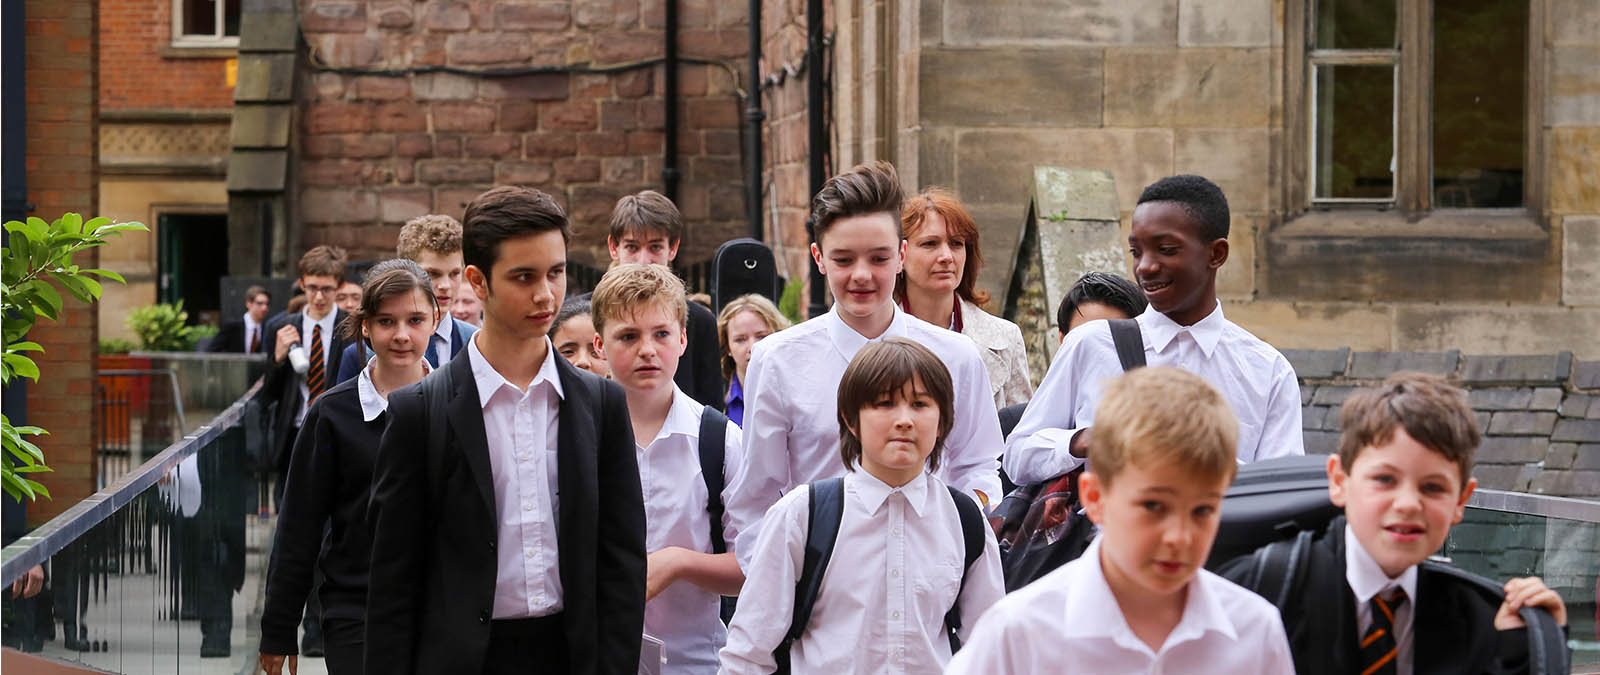 A large group of students crosses the bridge on Chetham's site